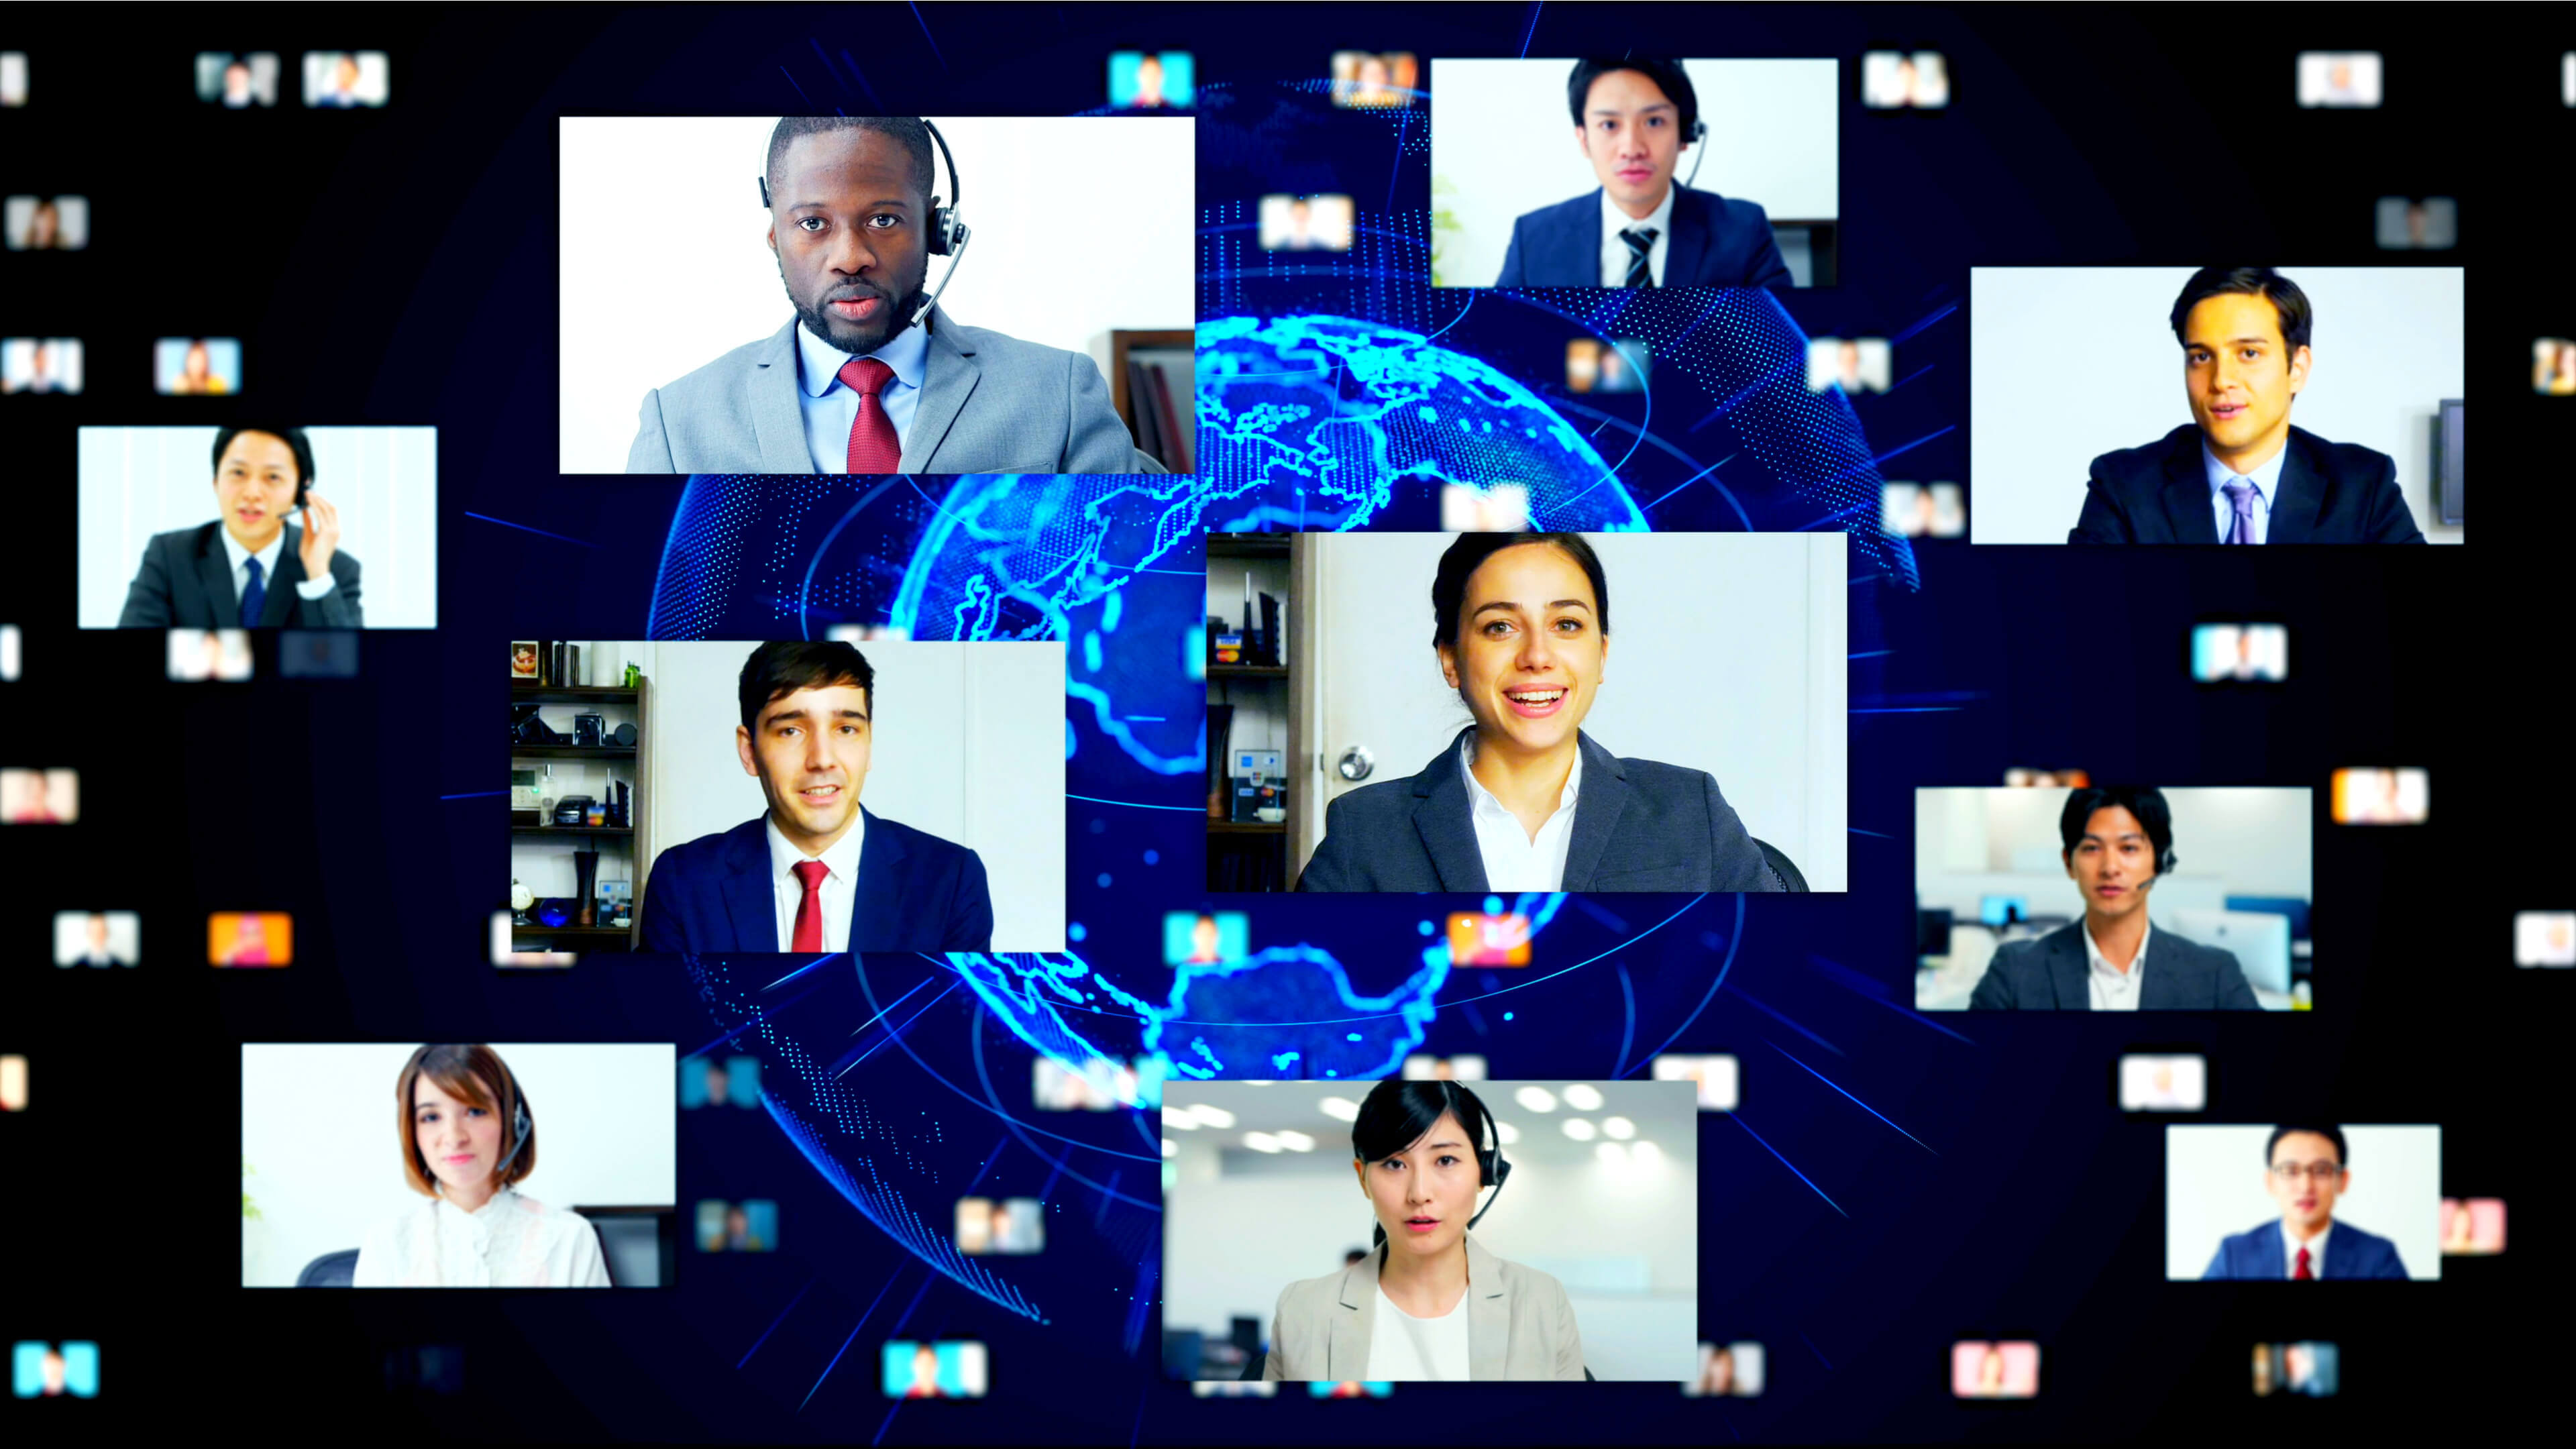 Professionals in business suits and ties communicating remotely from various countries, diversity and inclusion theme, against a blue globe backdrop